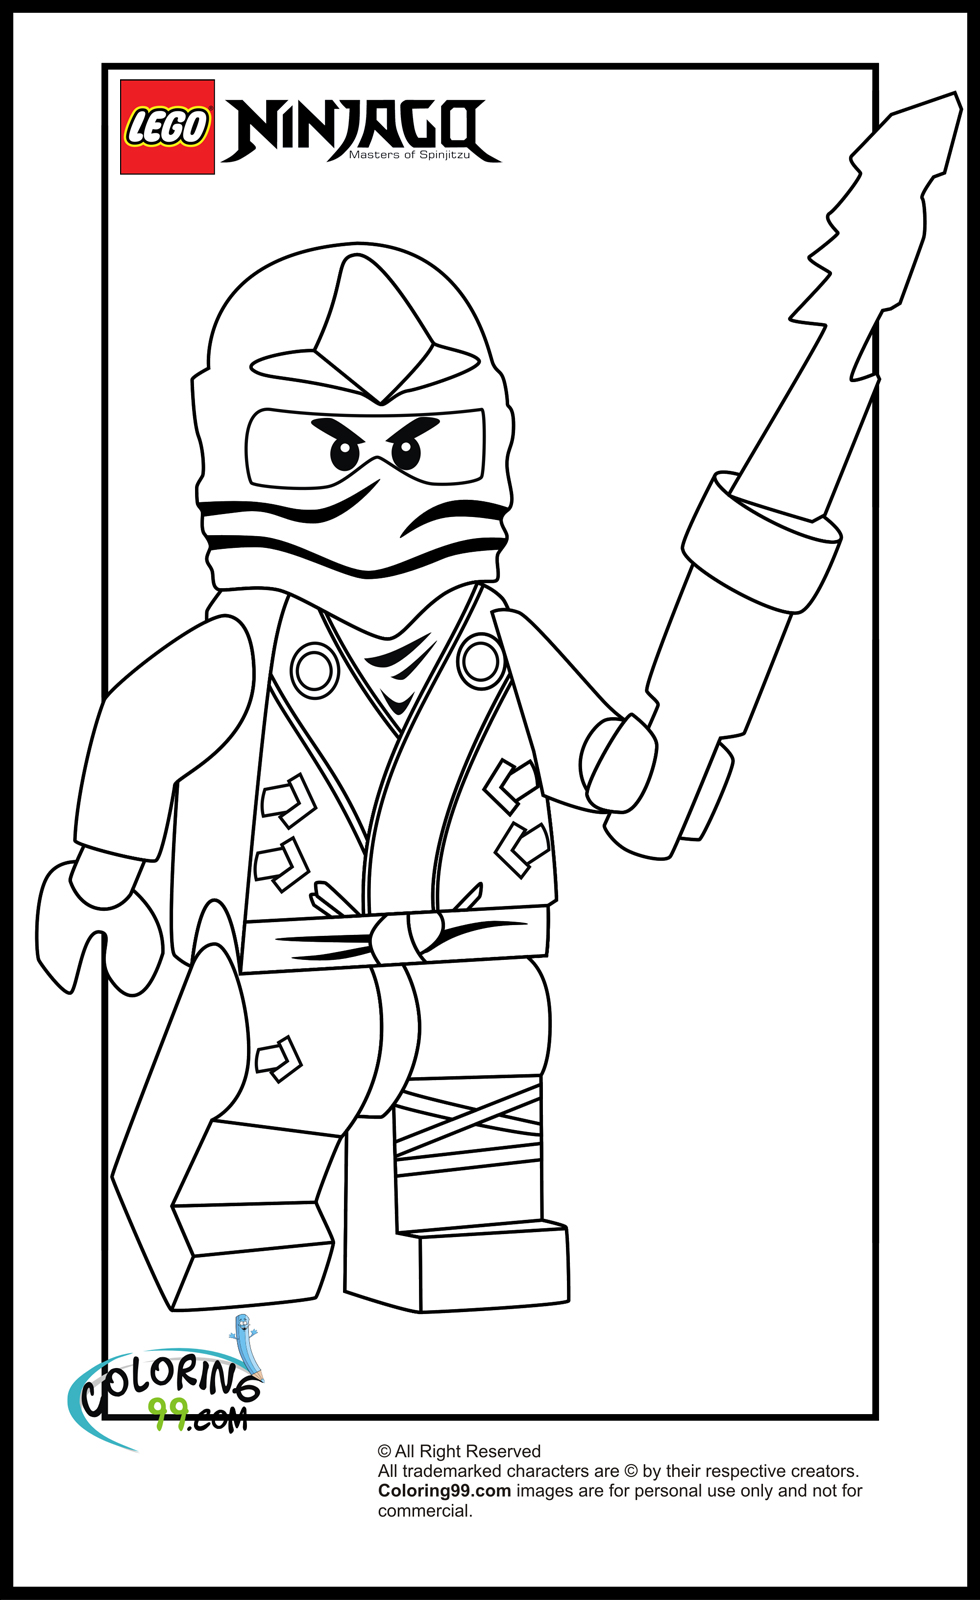 lego ninjago coloring pages - lego ninjago zane coloring pages minister coloring